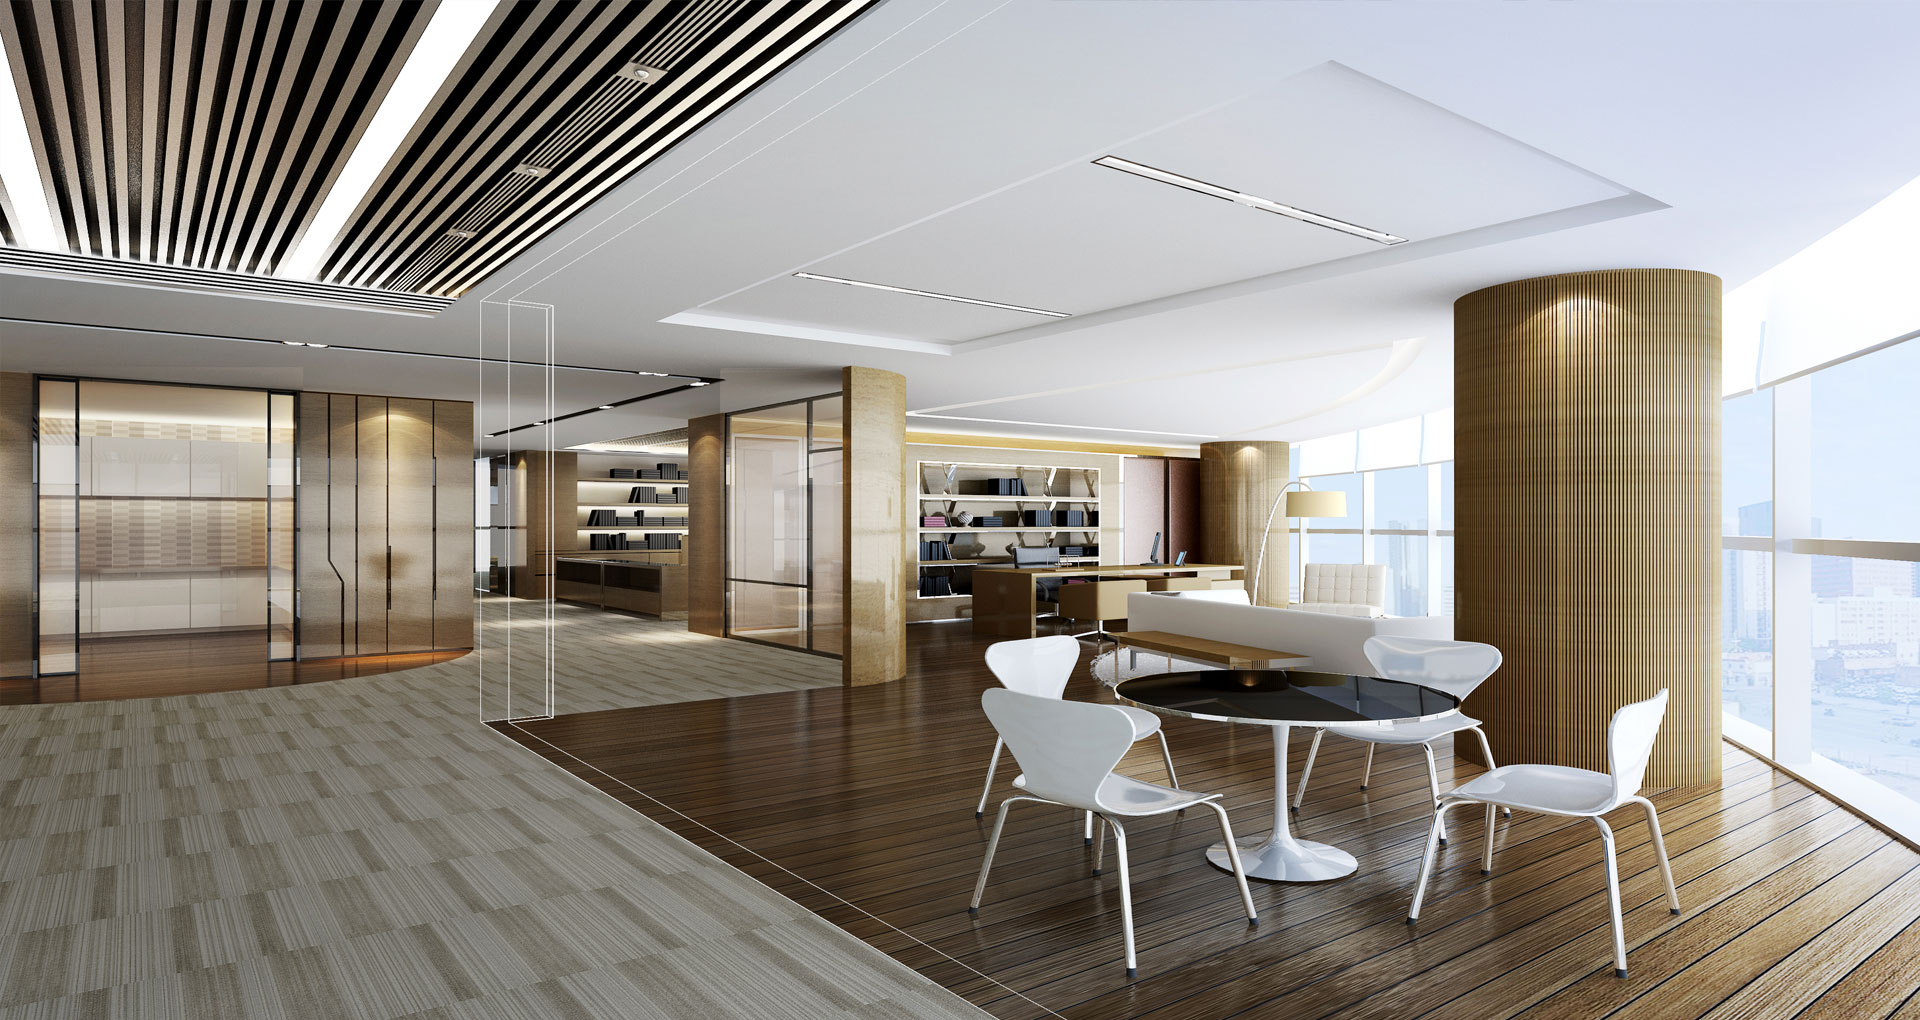 Office interior design inpro concepts design for Office design companies